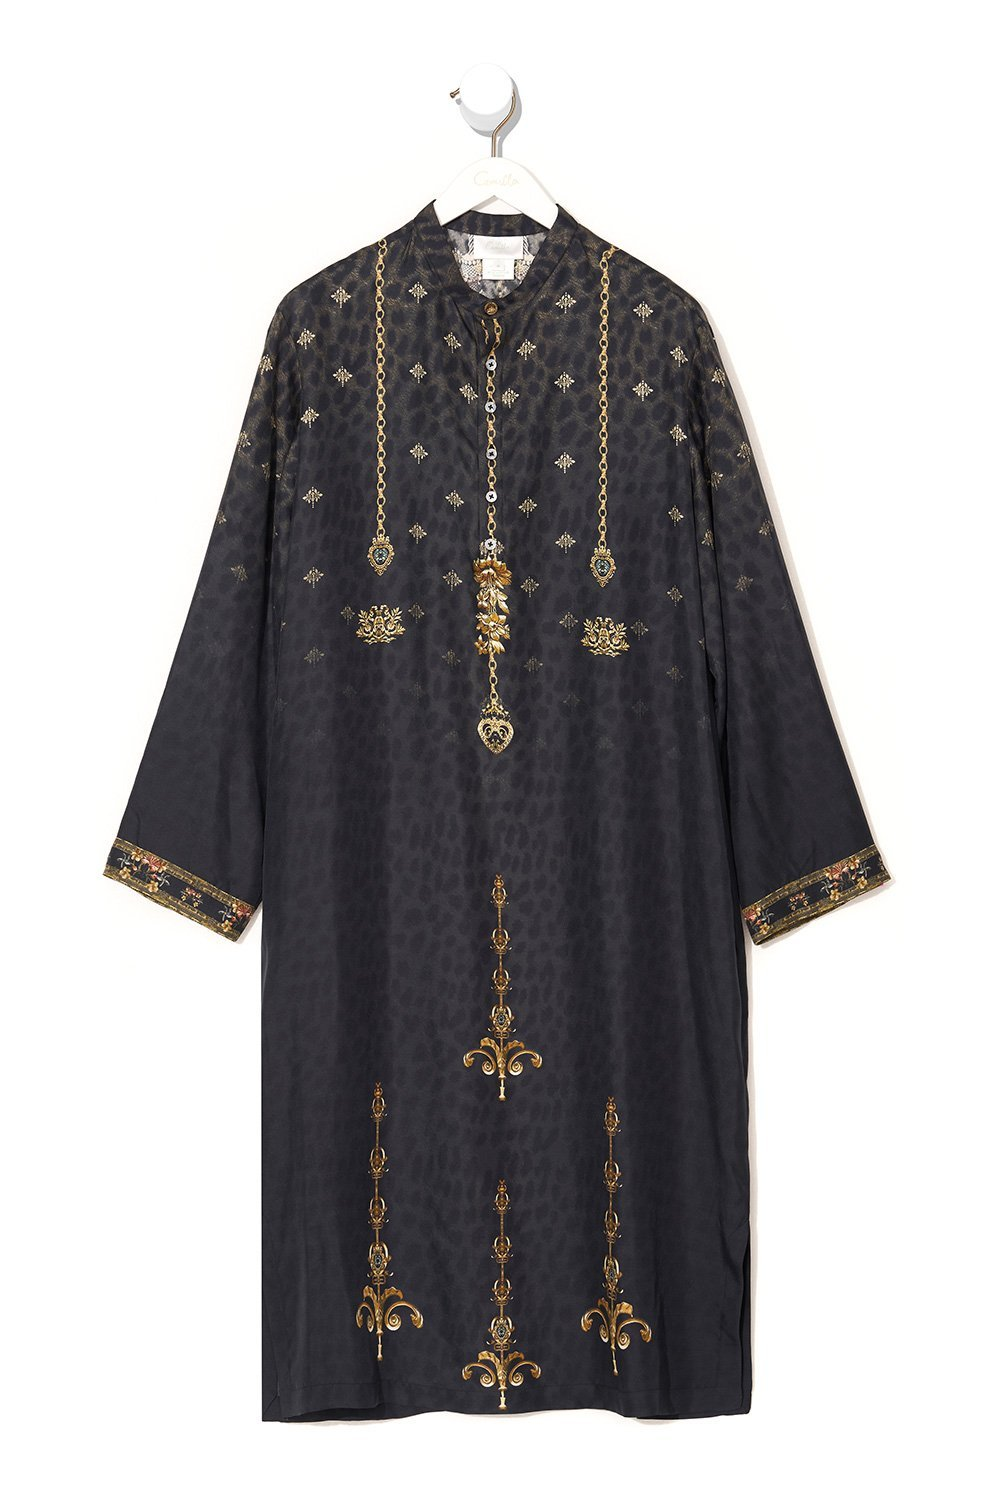 MENS KAFTAN ABINGDON PALACE